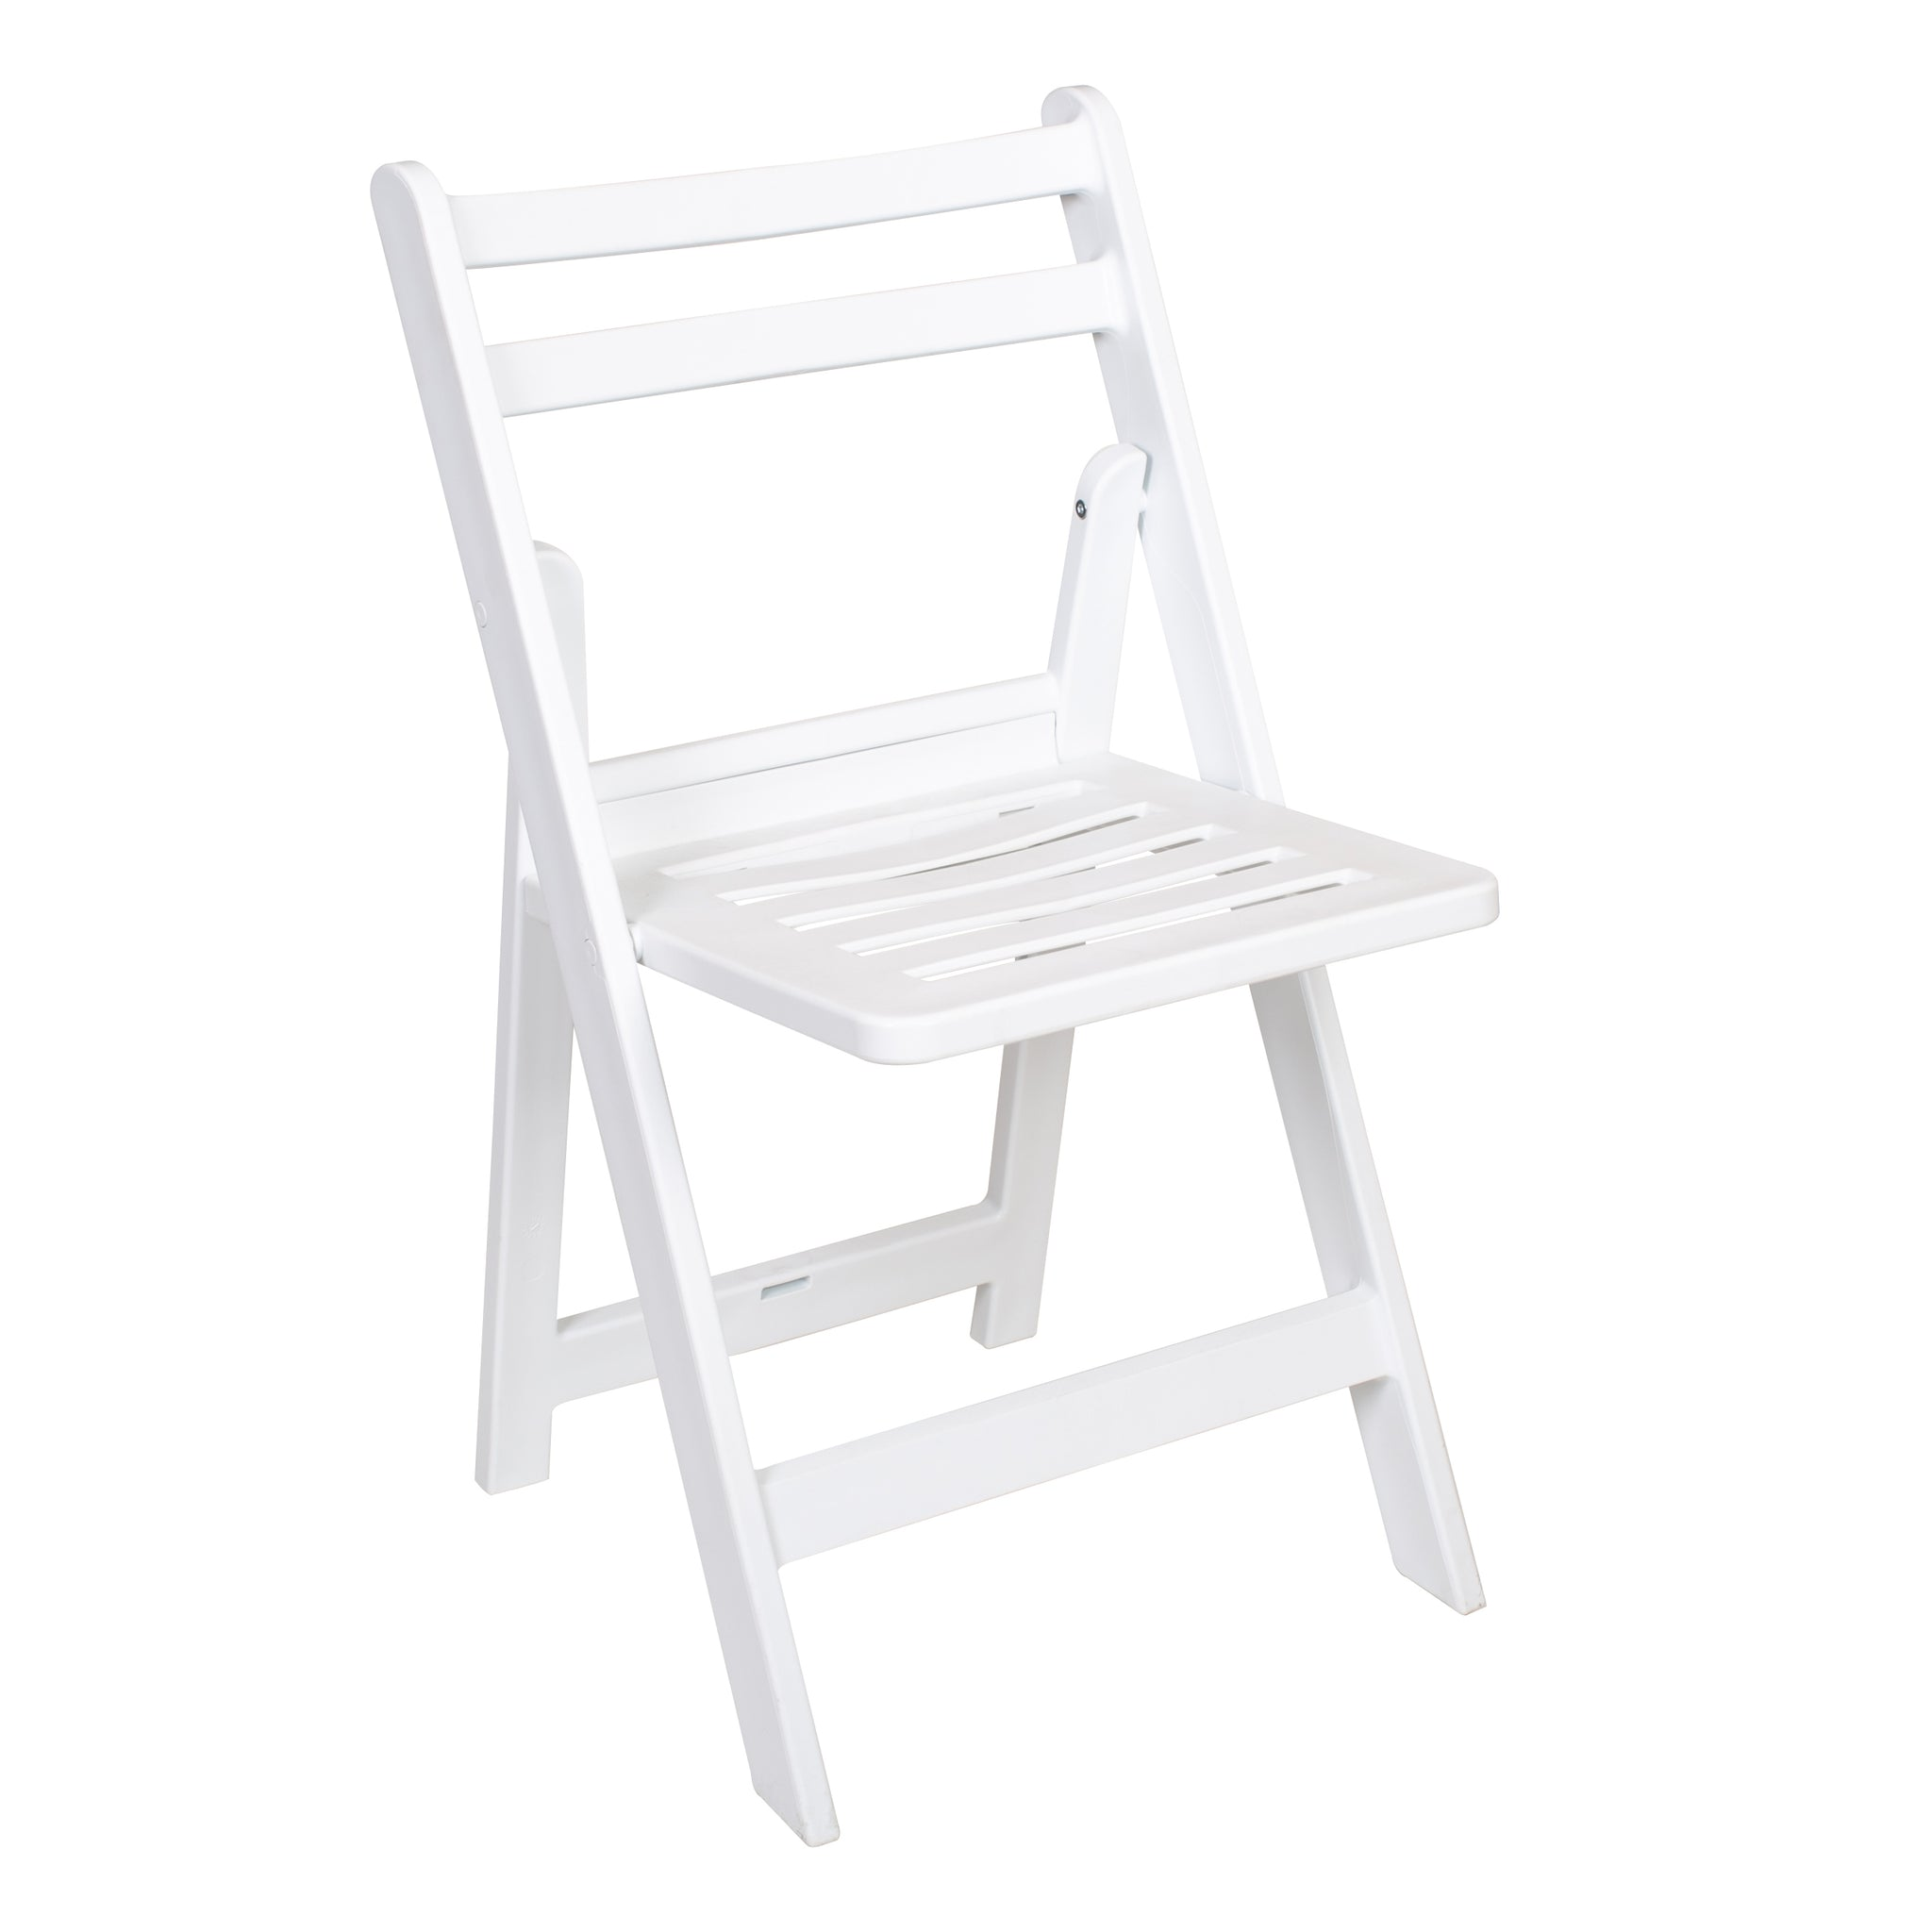 Slatted White folding americana chairs